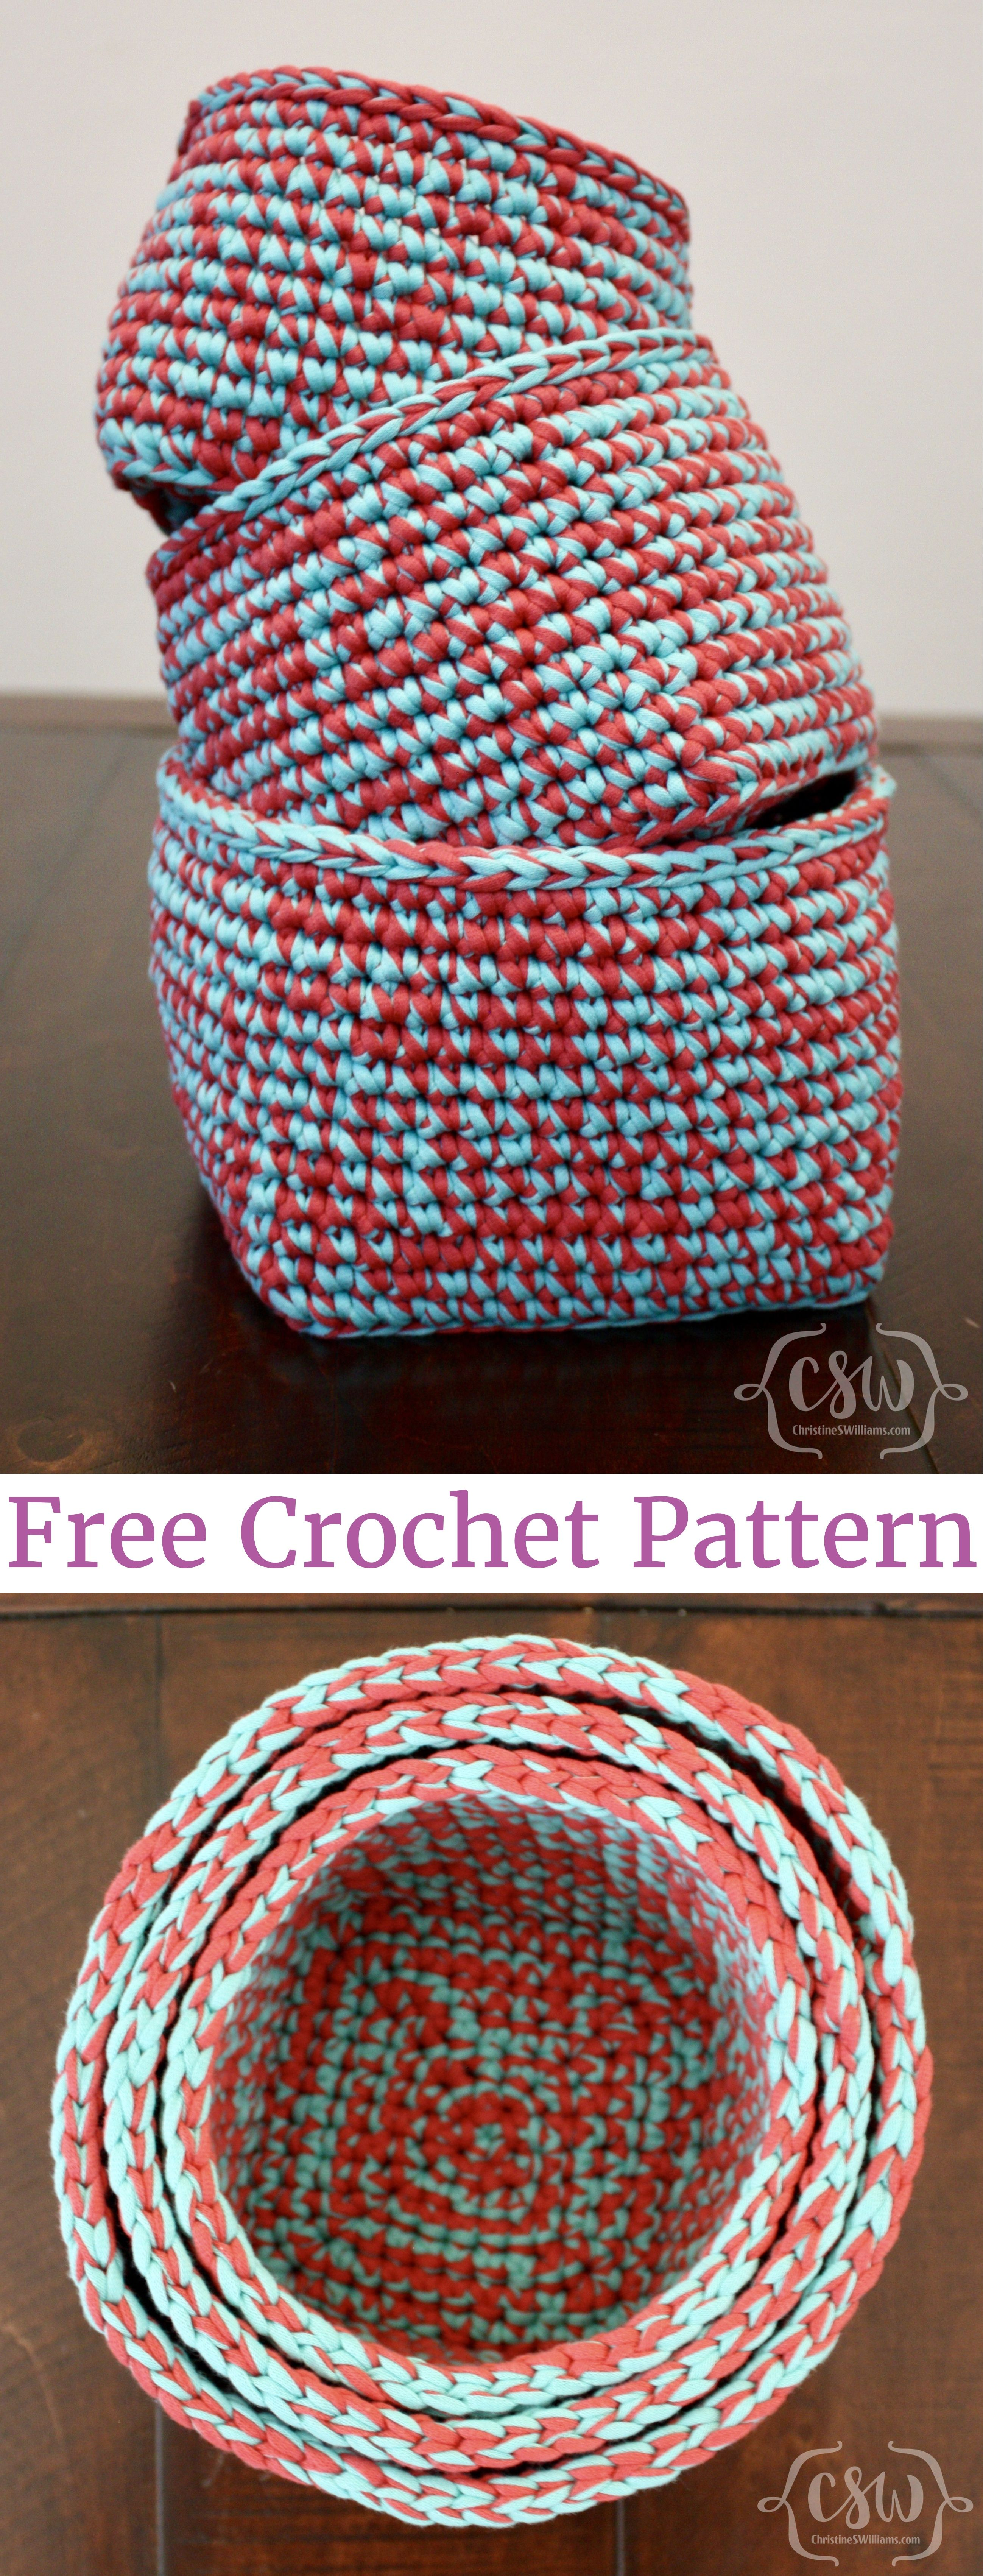 Multicolored Stacking Baskets | Free crochet, Crochet and Patterns